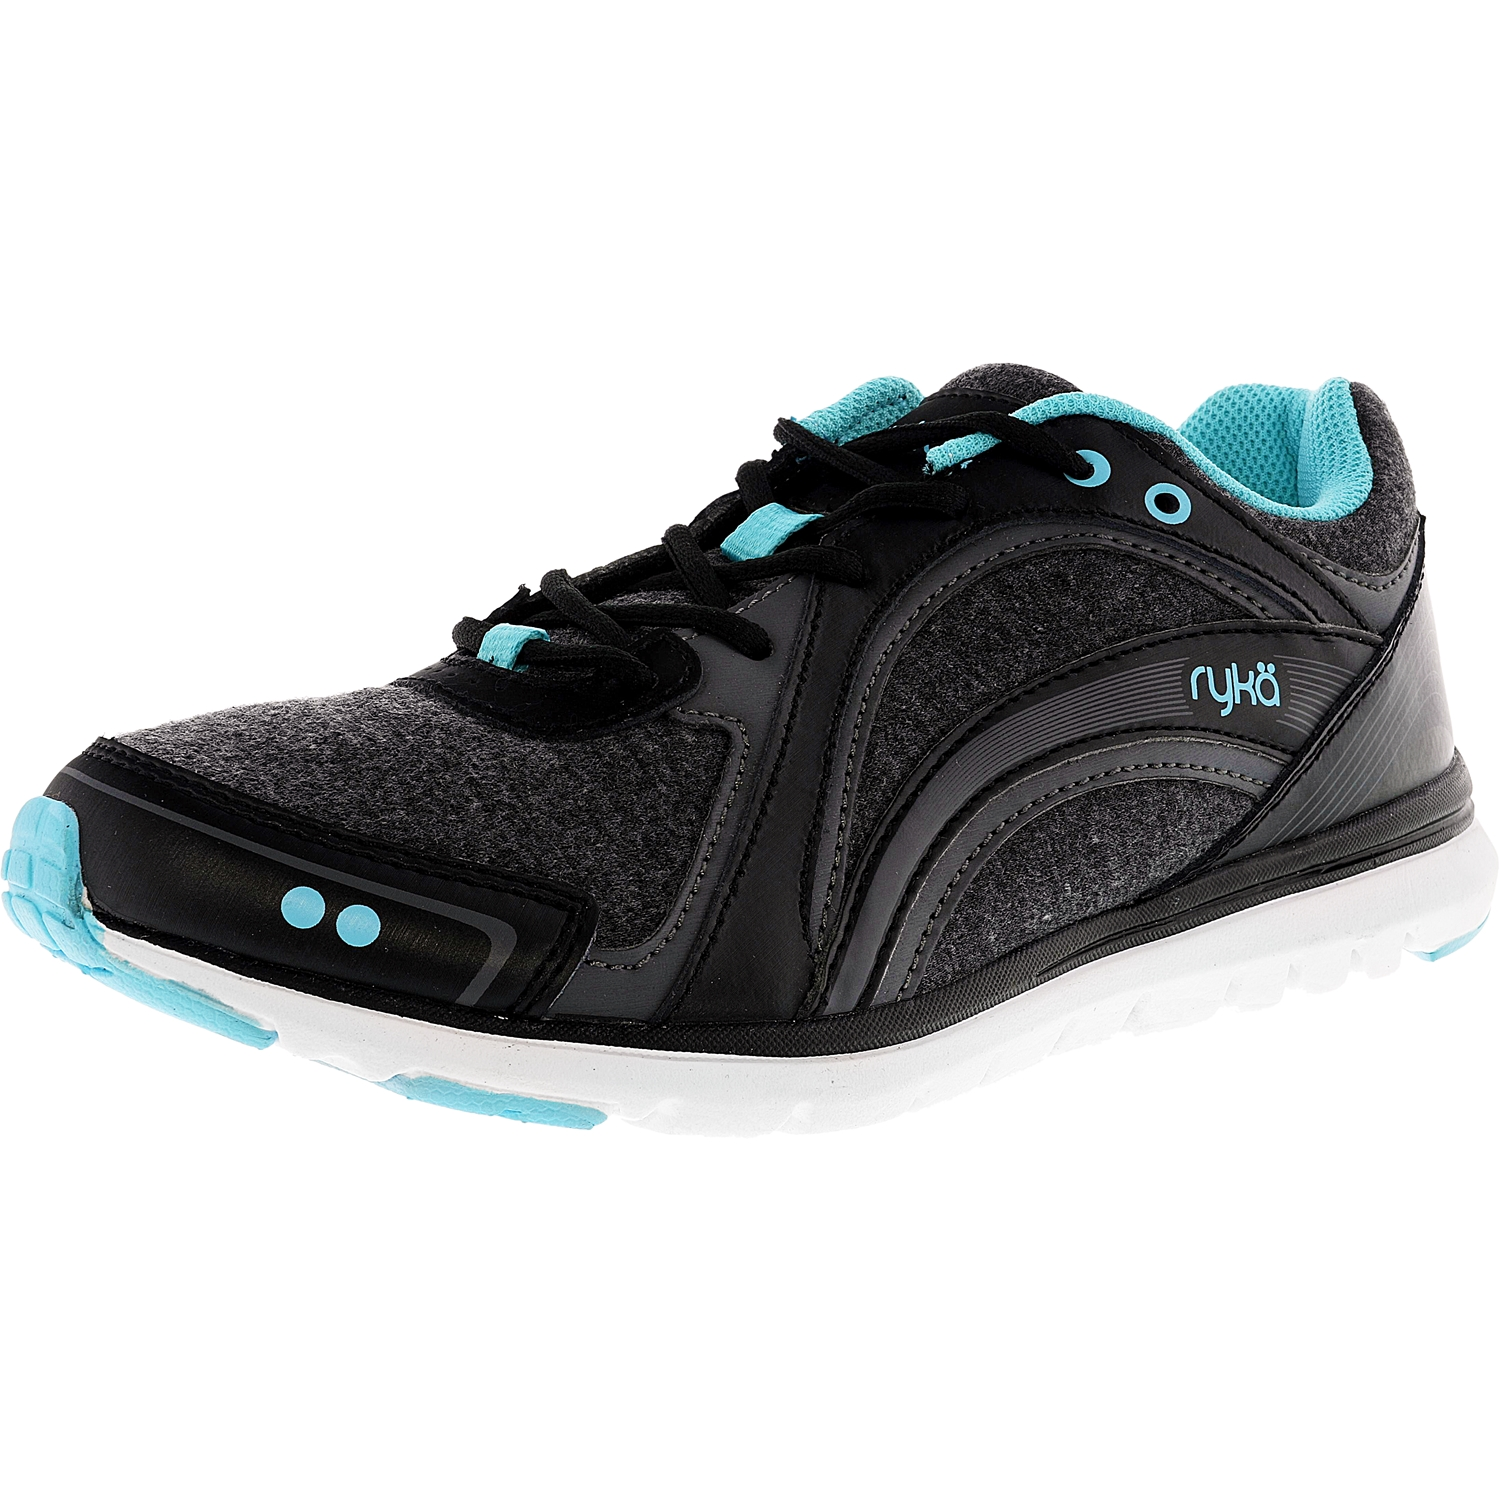 Ryka Women's Aries Black / Grey Blue Fashion Sneaker - 6.5M